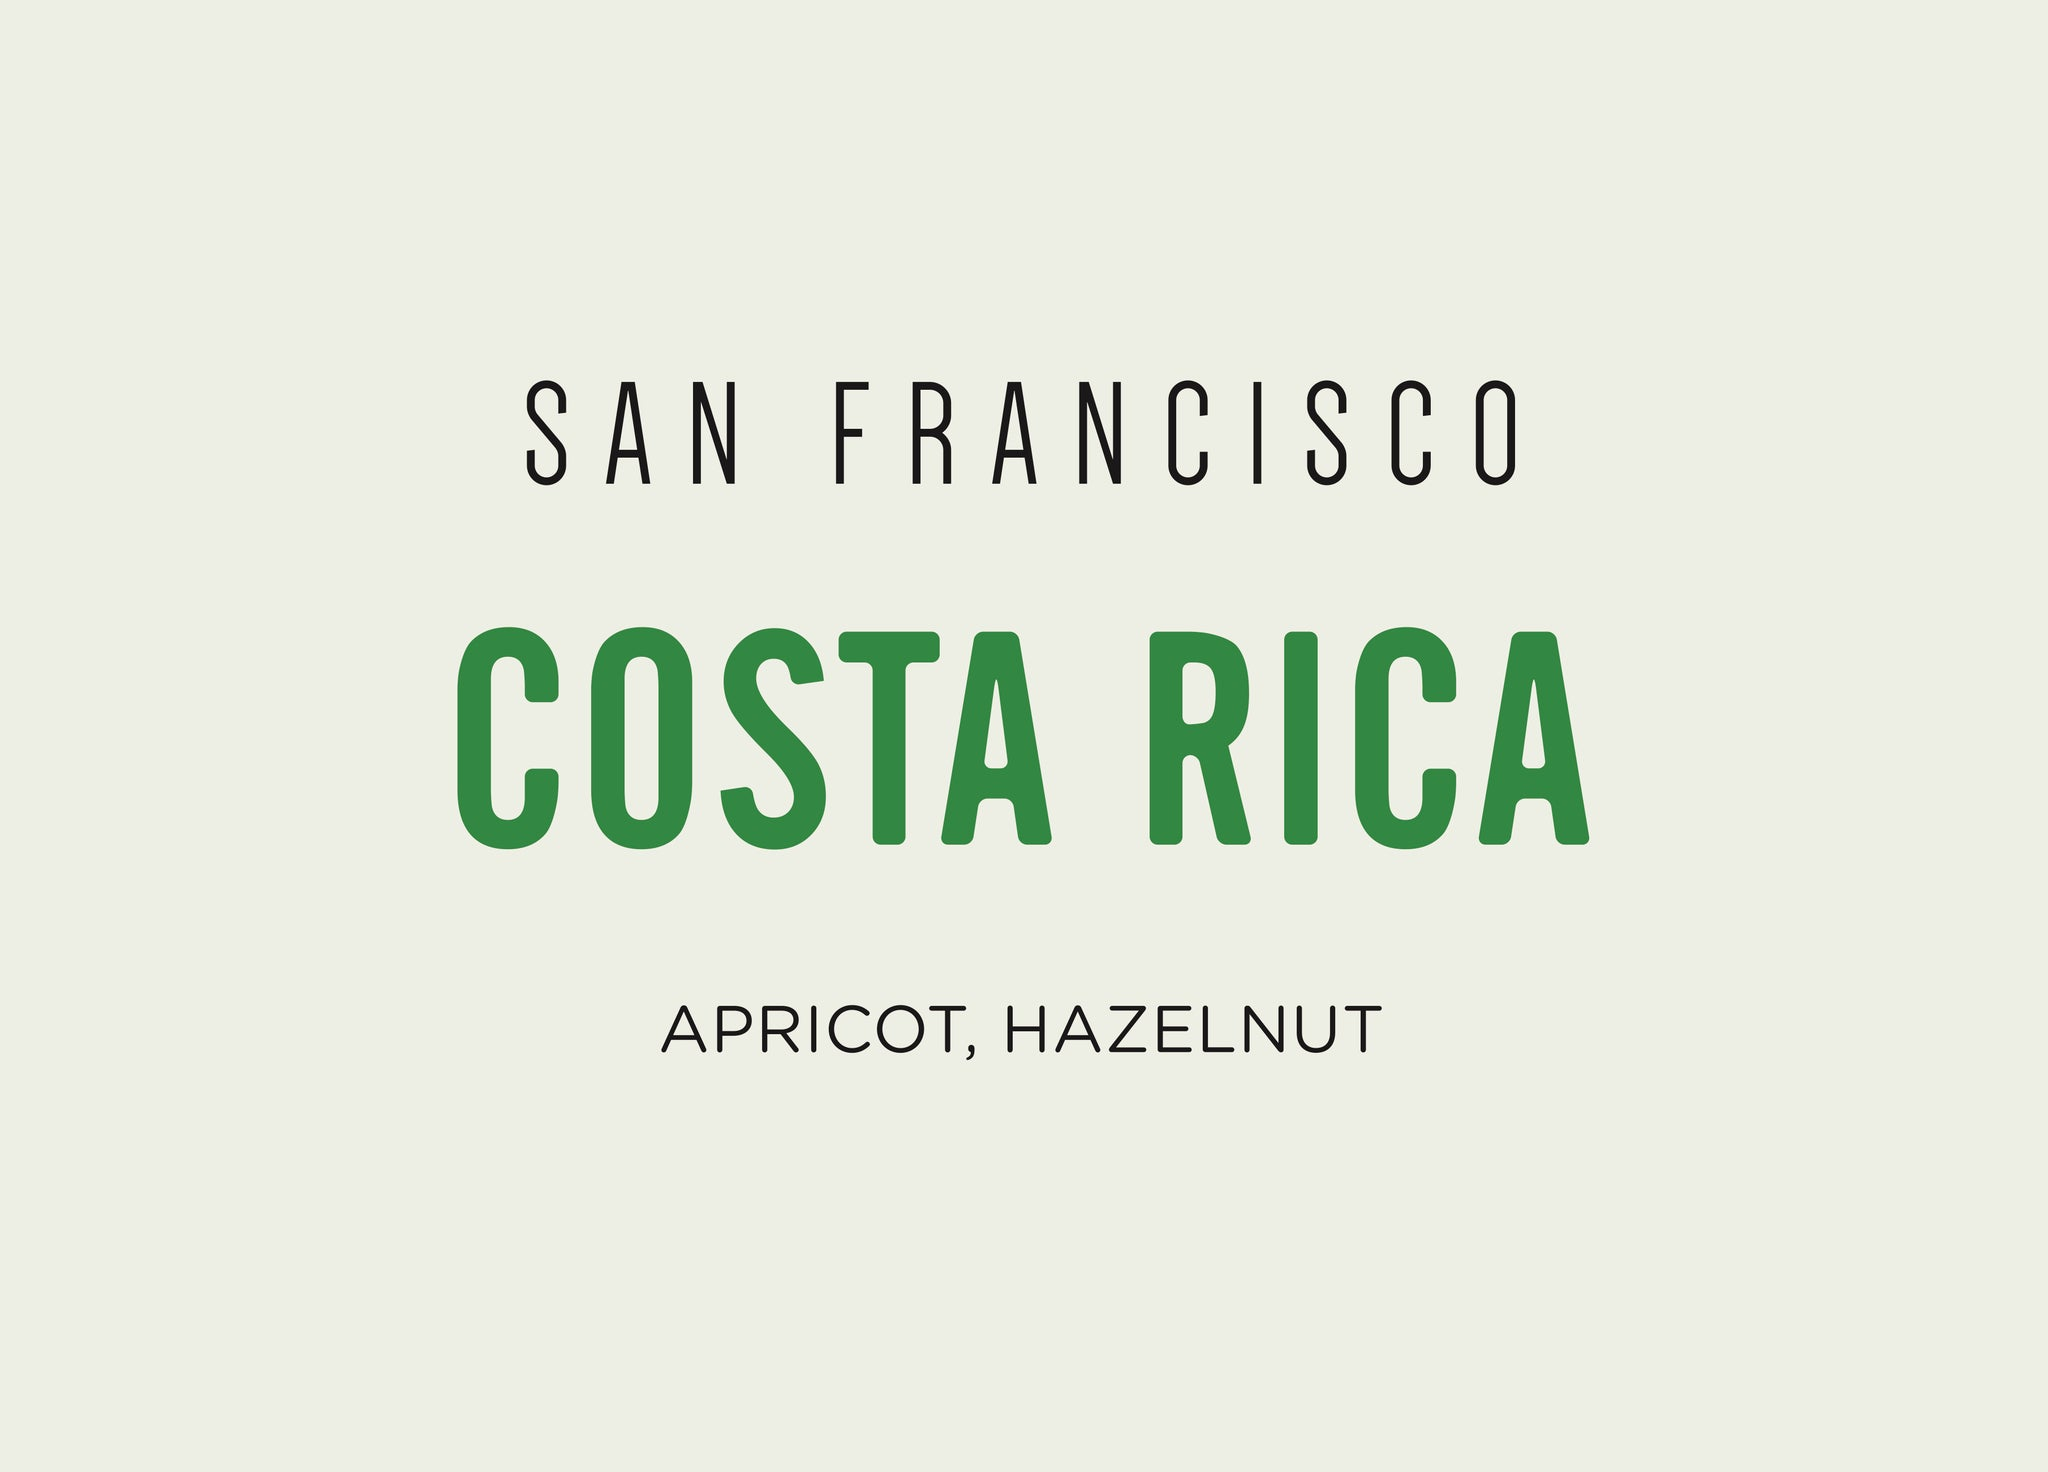 Costa Rica - San Francisco